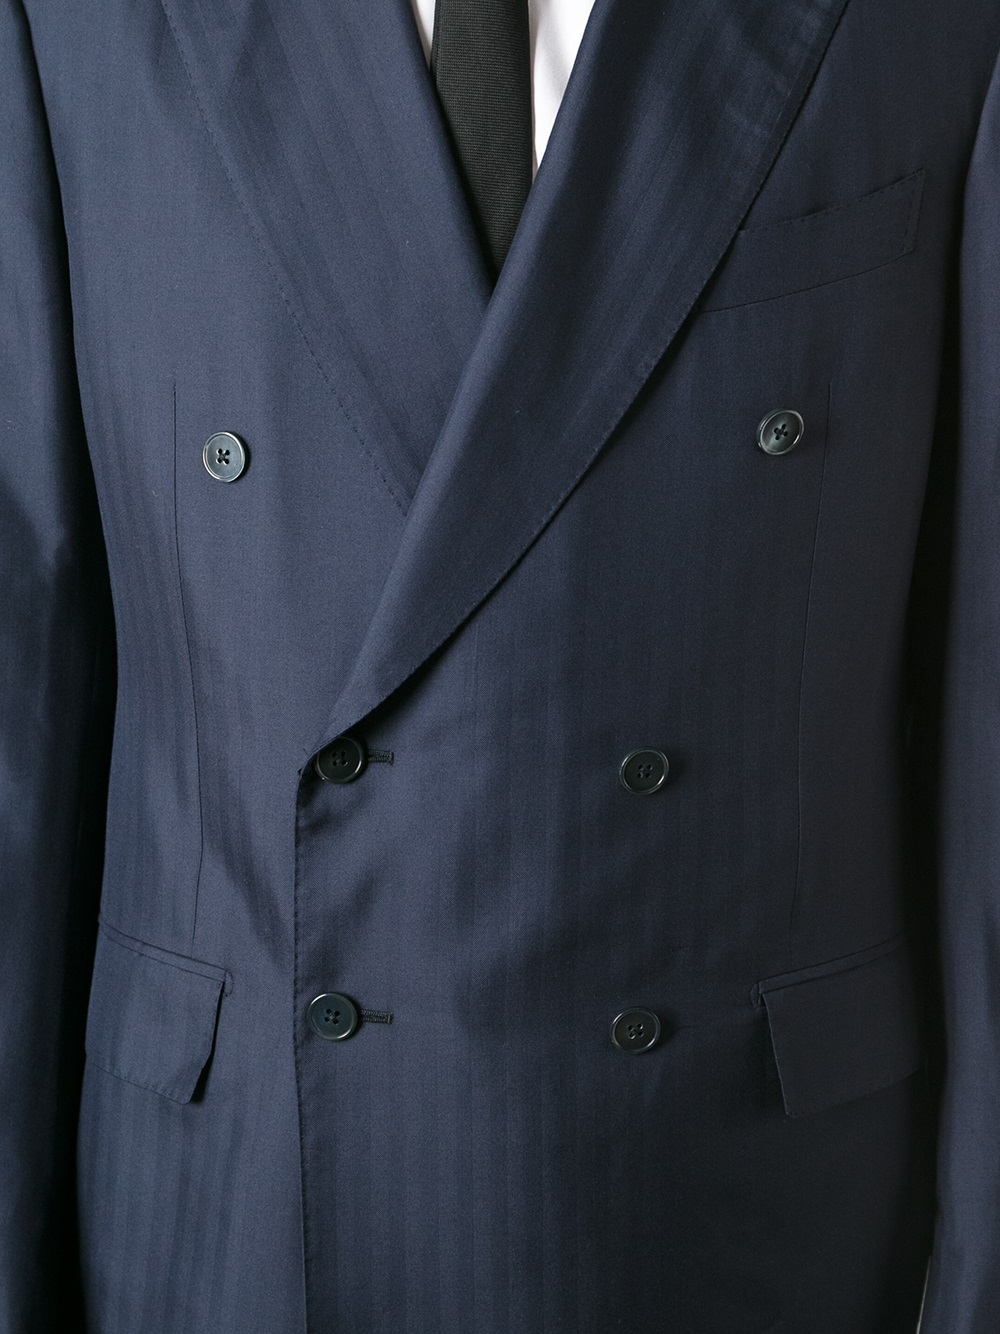 Ermenegildo Zegna single breasted jacket - Blue Outlet Cost hrI7GFJKb5